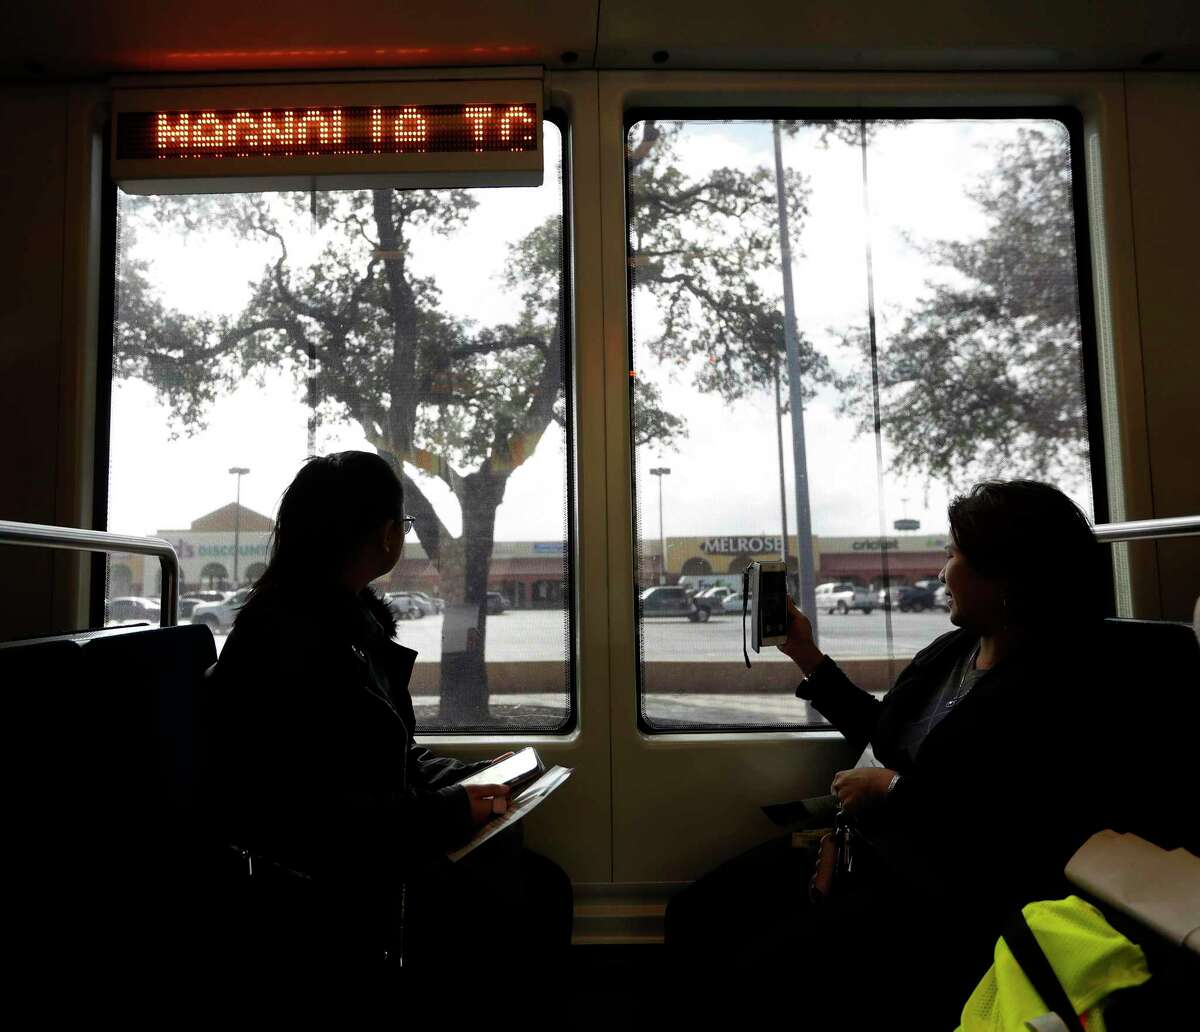 Tam Tran, left, and her mother Thuy Nguyen, right, look through the windows at a shopping center parking lot as they rode in the inaugural METRORail trip across the recently completed Harrisburg Overpass Bridge, Monday, January 9, 2017.